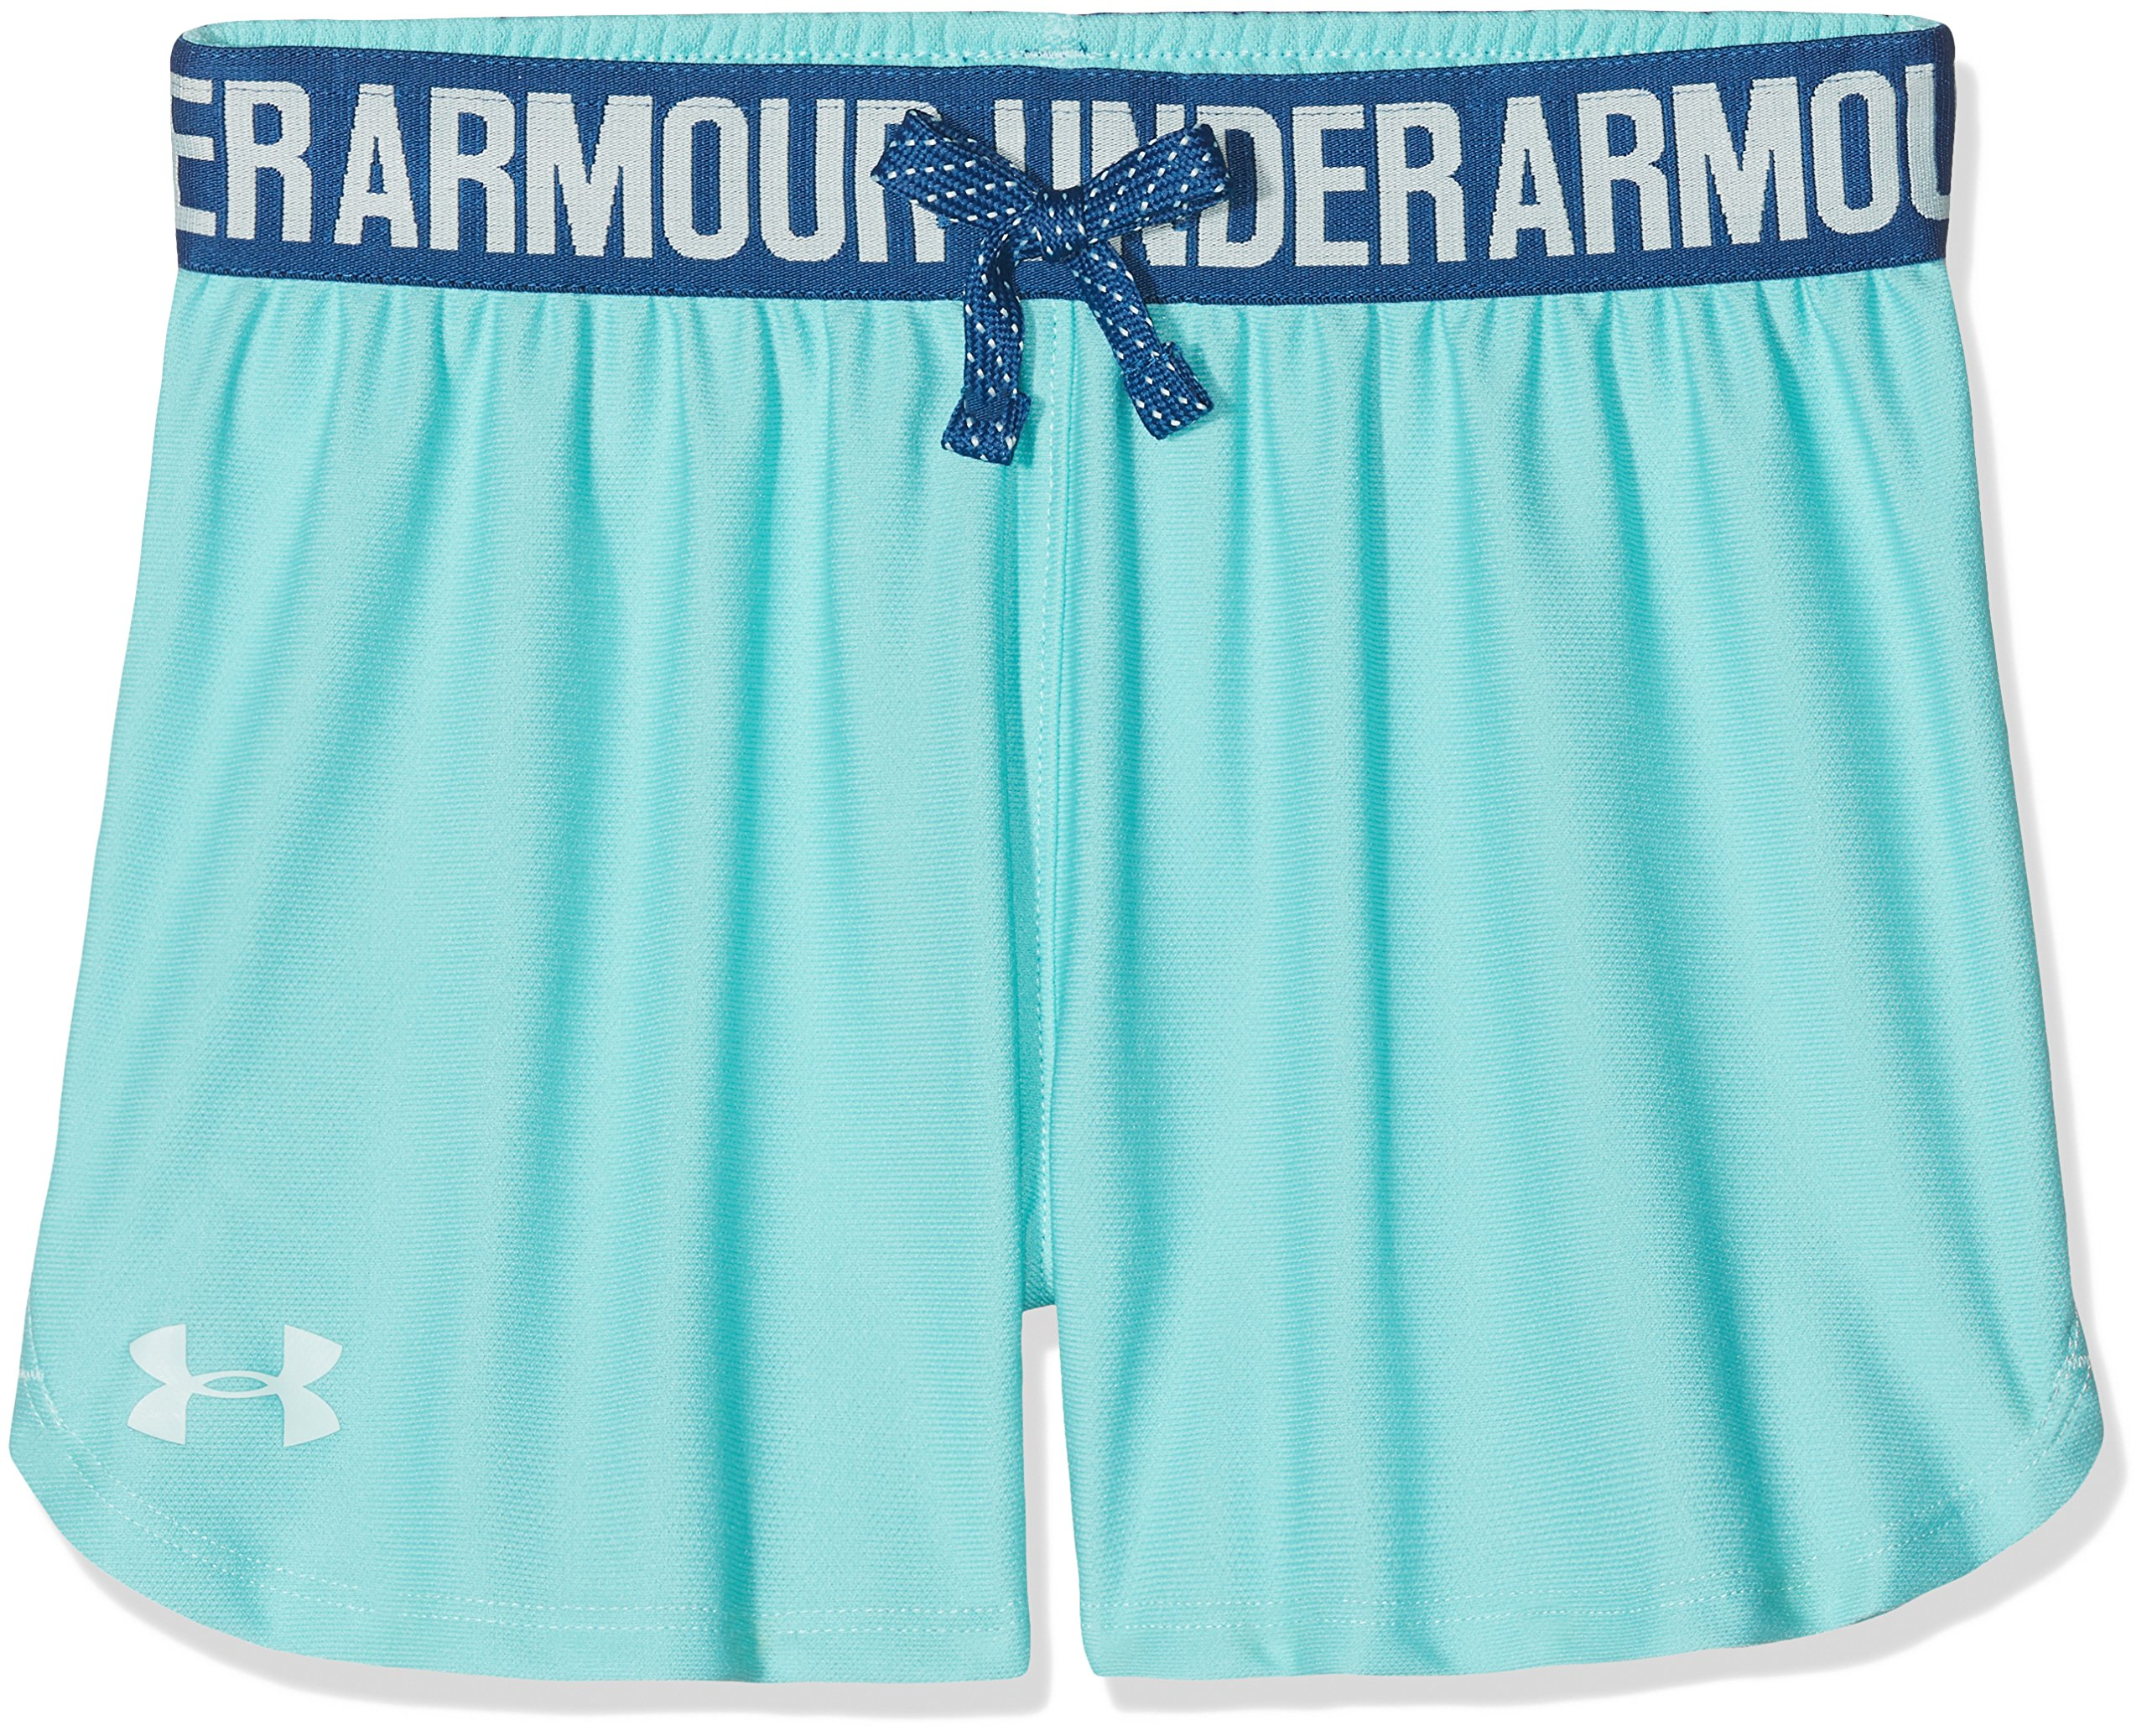 Under Armour Kids Girl's Play Up Shorts (Big Kids) Tropical Tide/Moroccan Blue Small